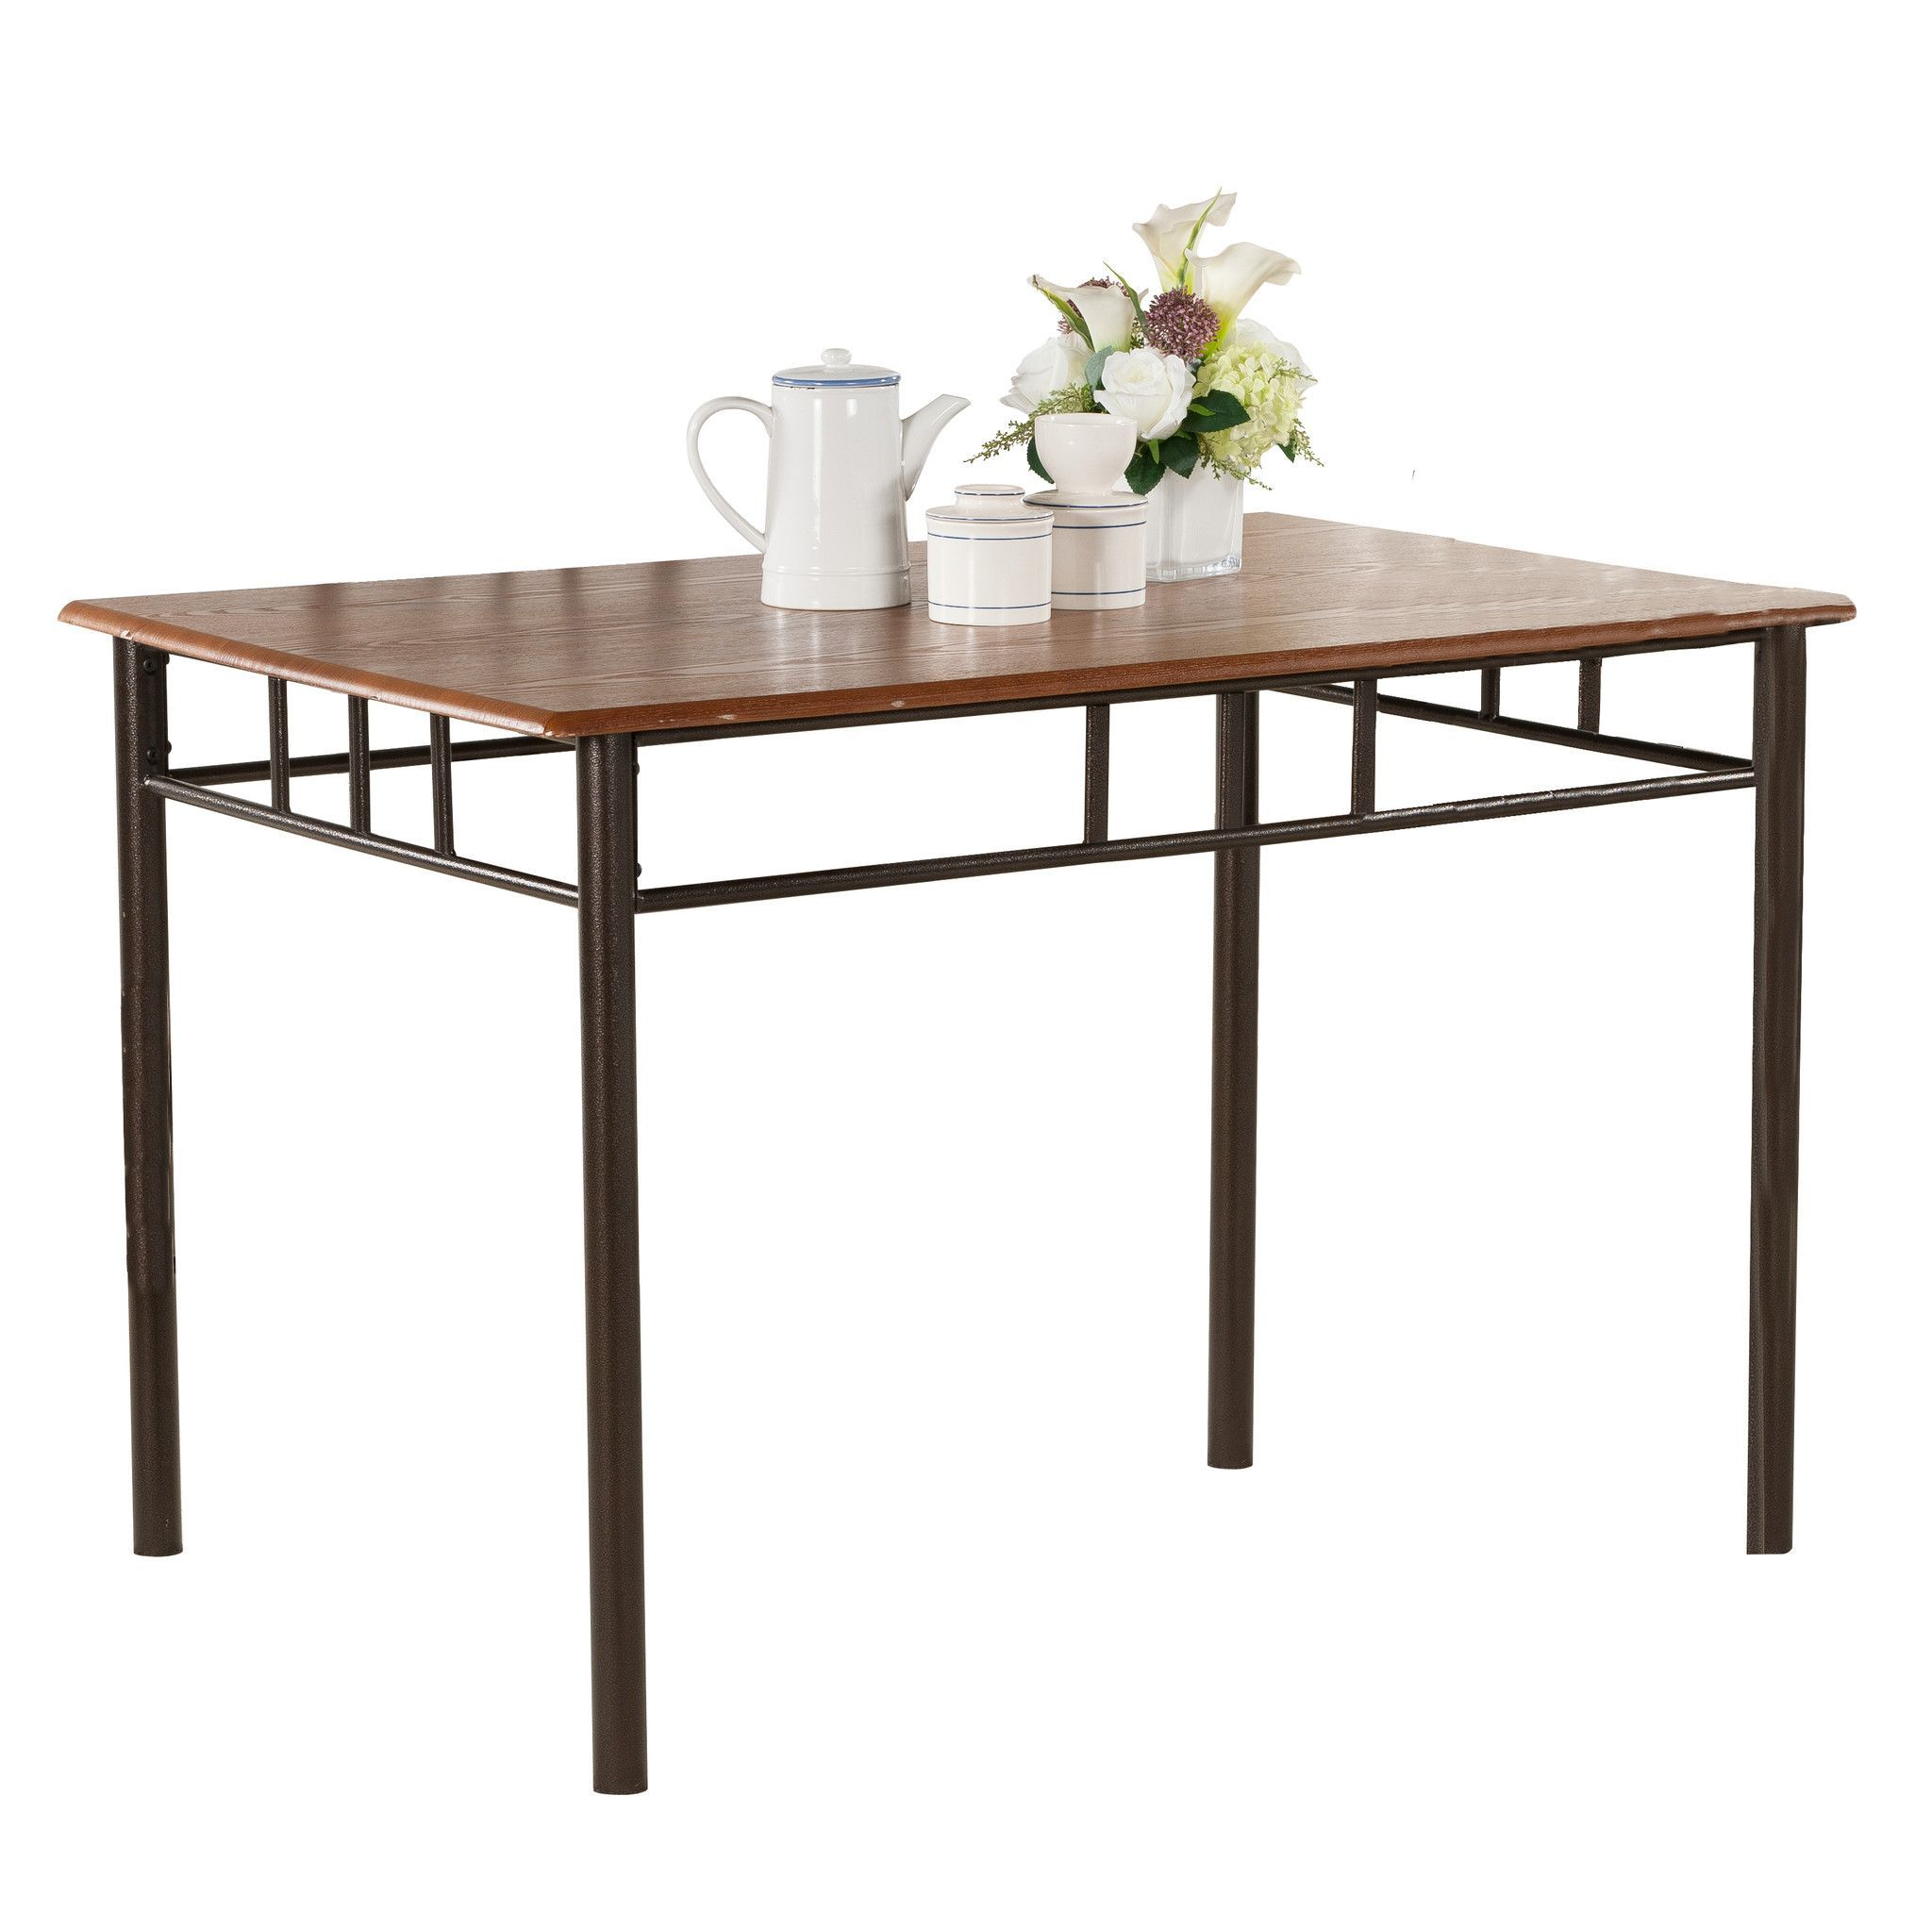 Pilaster Designs - Metal Frame With Cherry Finish Wood Top Rectangular Dining Room Kitchen Table